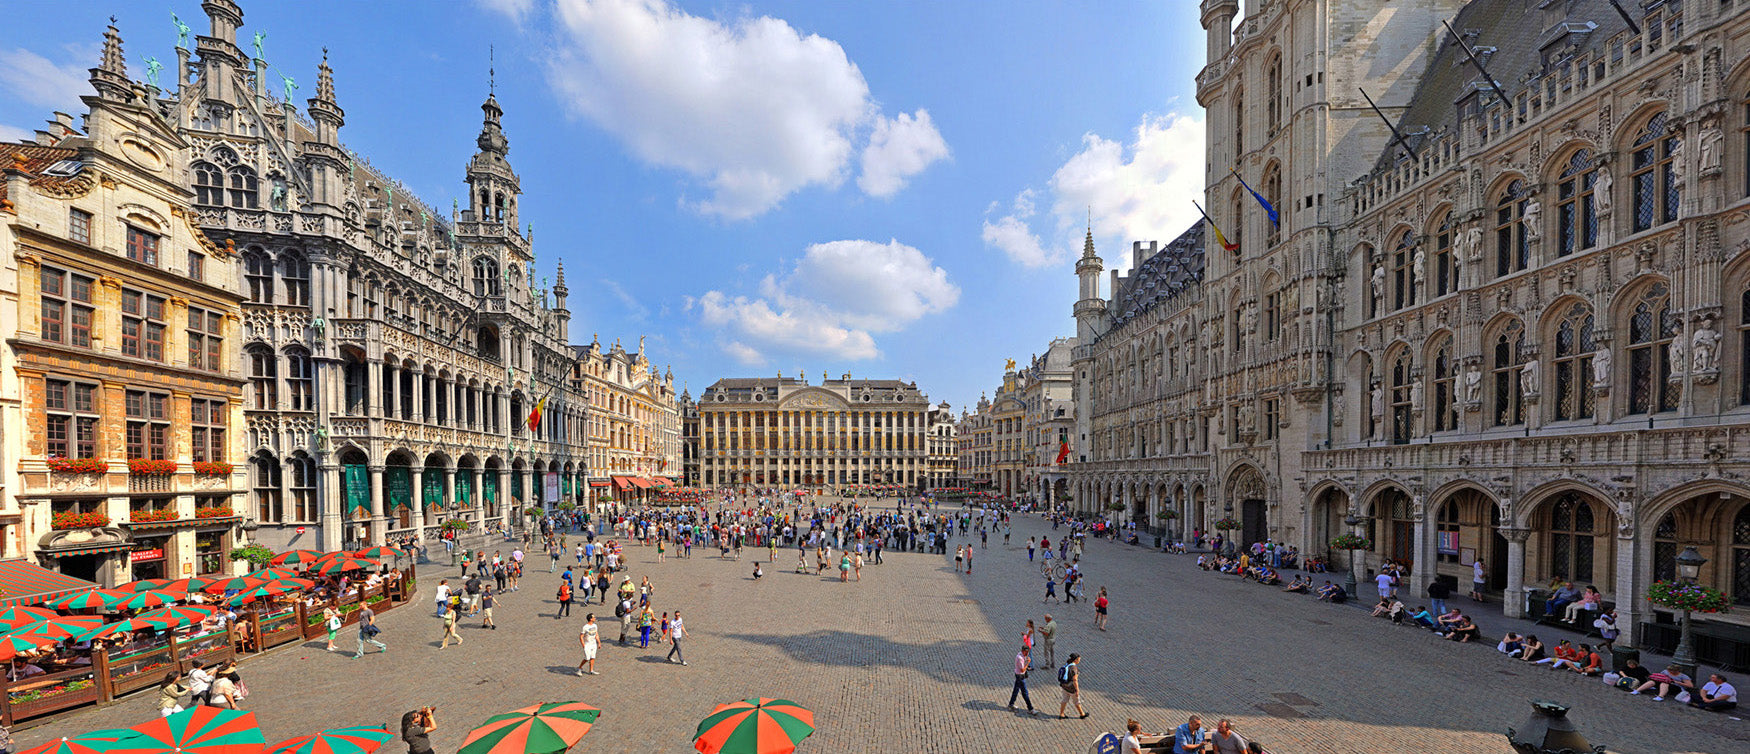 Brussels Grand Place - Open Edition up to 100 cm x 230 cm